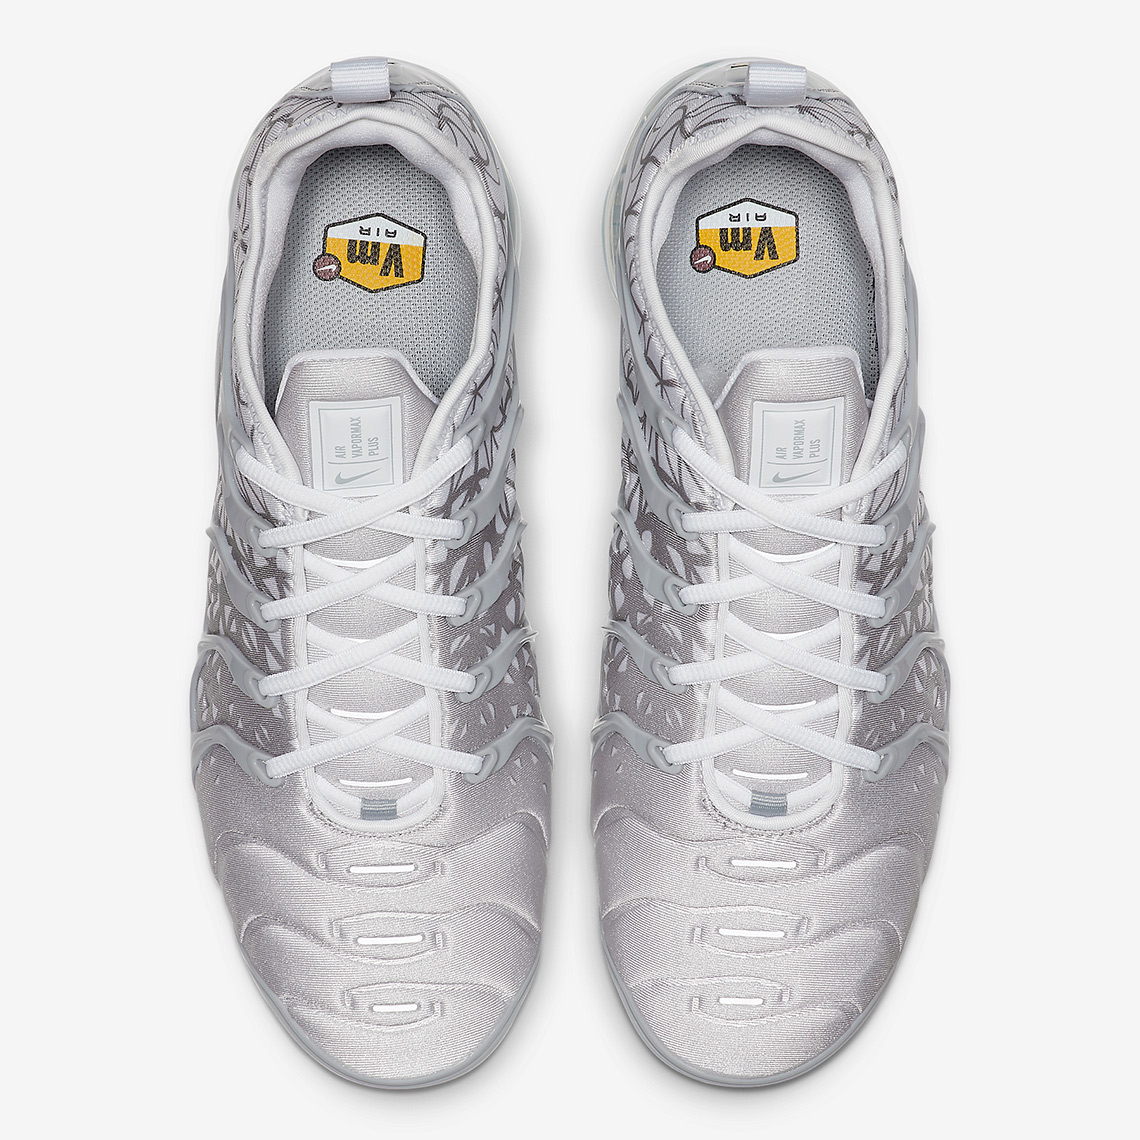 36e3e68fd99 The Nike Vapormax Plus Returns In White And Silver With Patterns ...